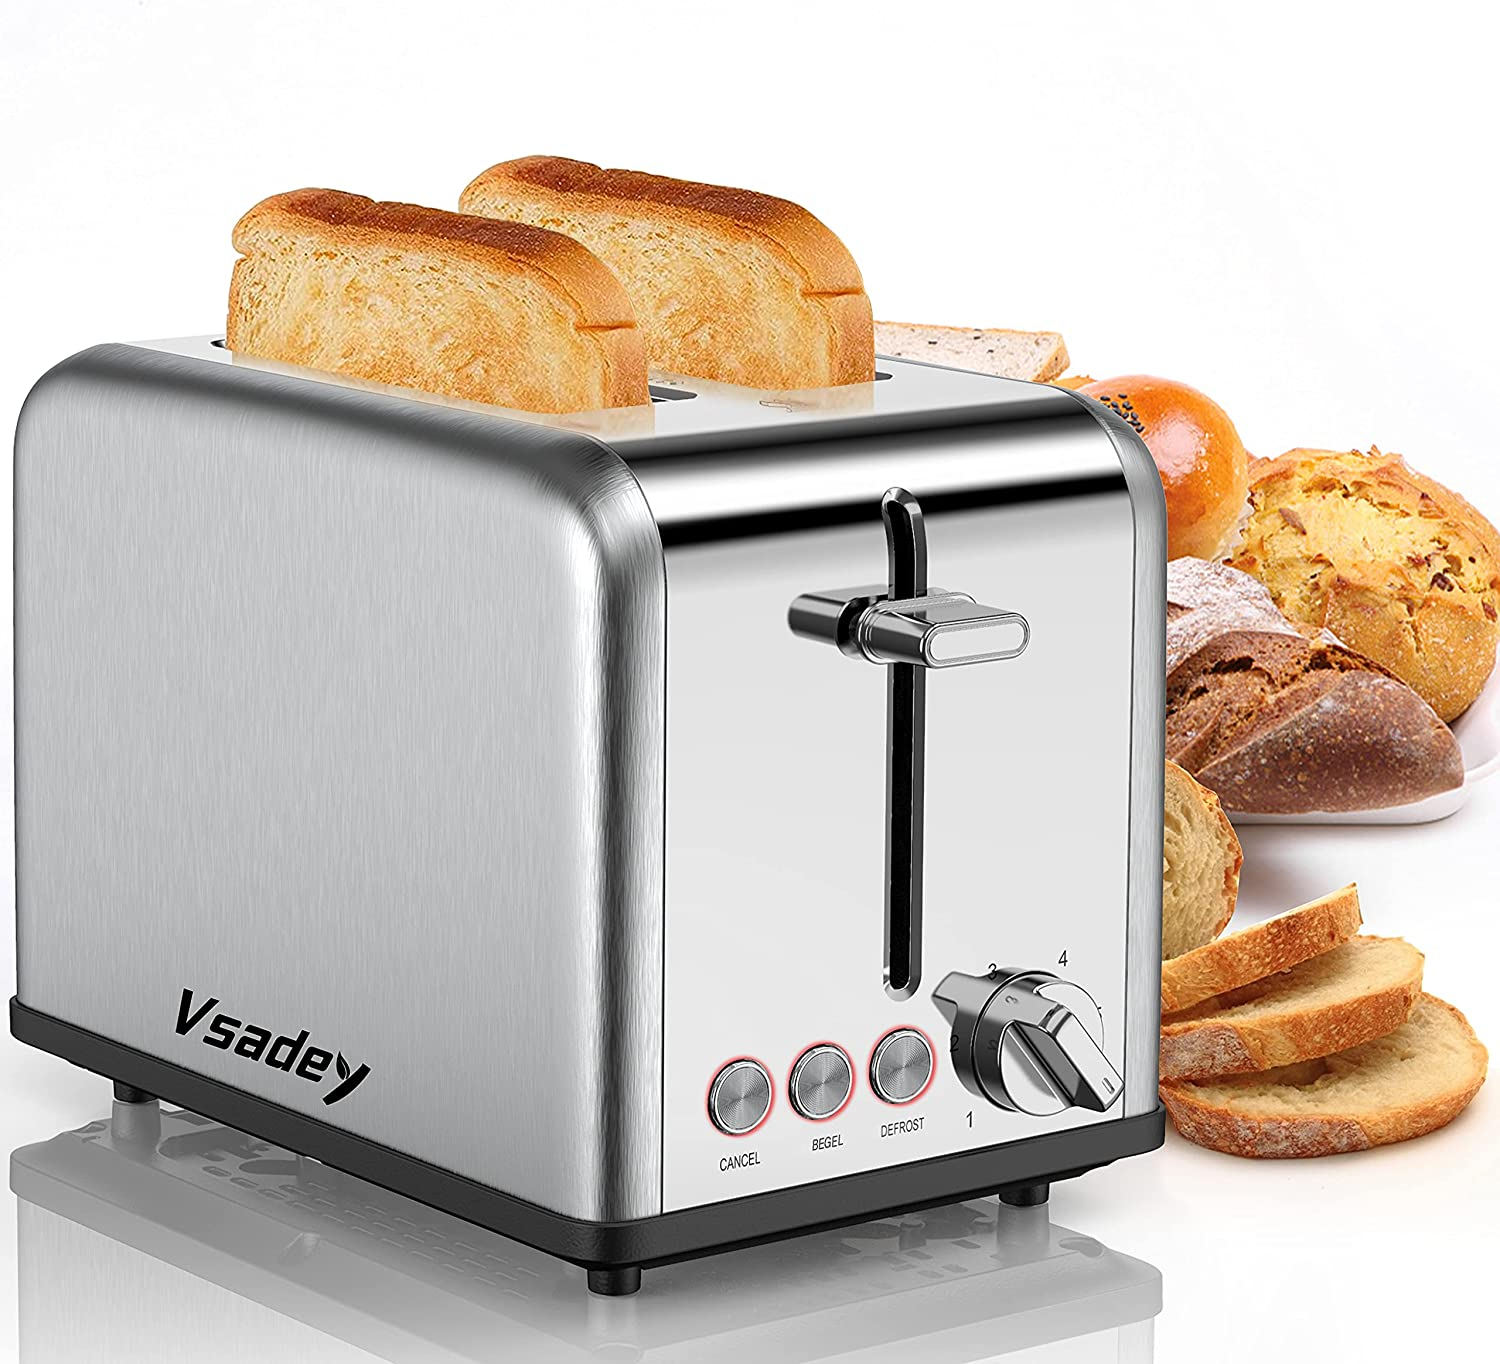 Toasters 2 Slice , Vsadey Stainless Steel,Bagel Toaster - Bagel/Defrost/Cancel Function,Extra Wide Slots,High Lift Lever, Auto Shut Off,Removable Crumb Tray,for Various Bread Types (815W) (Silver)